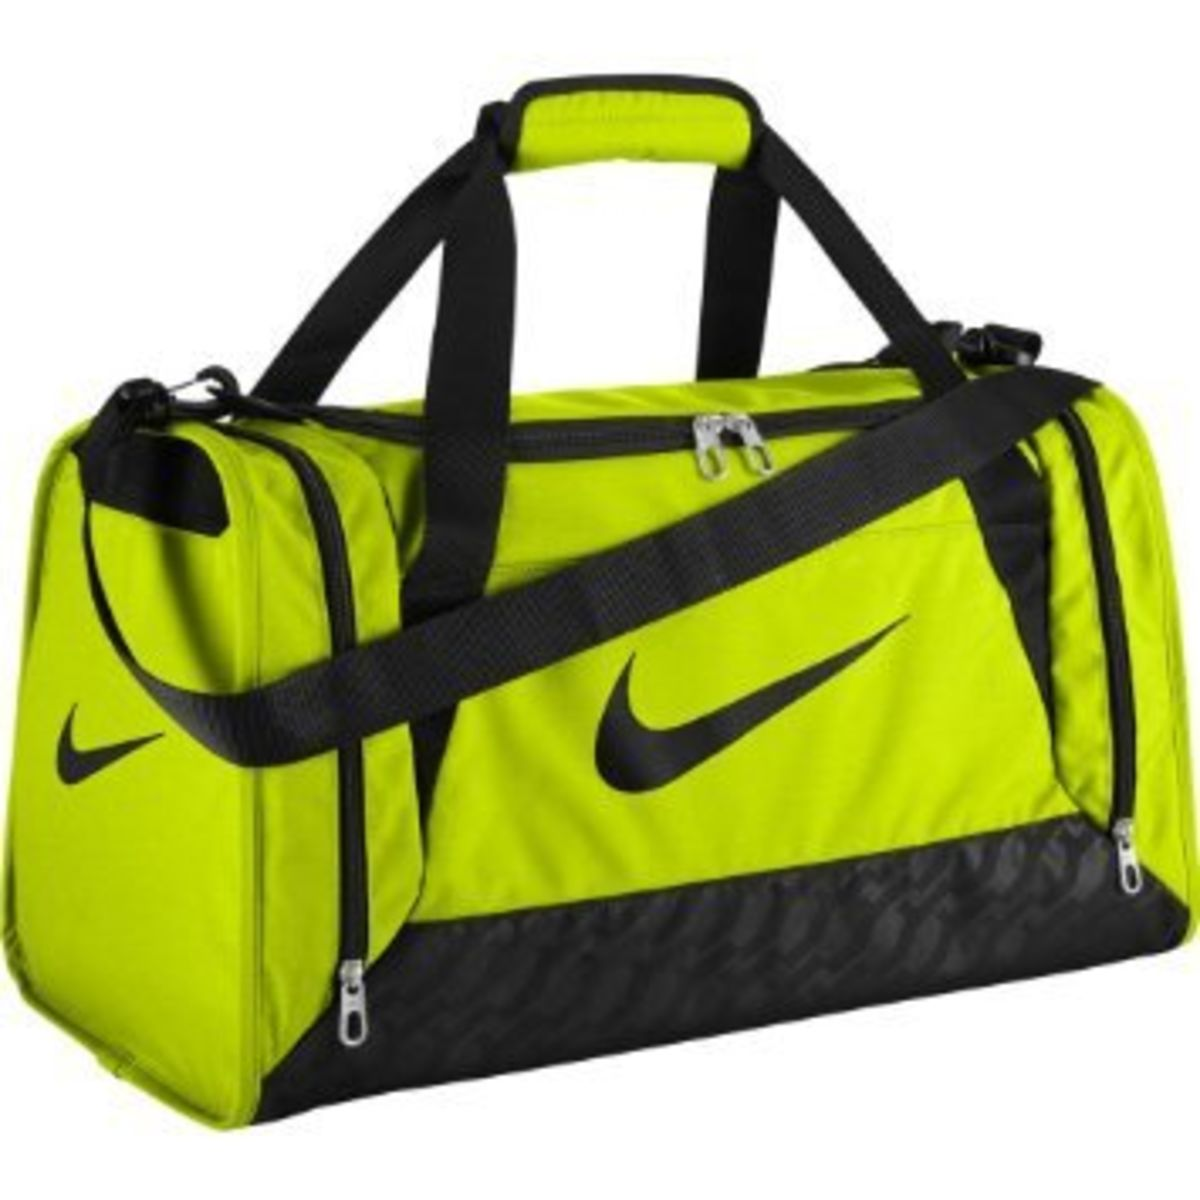 Headline for The Best Rated Gym Bags With Shoe Compartment